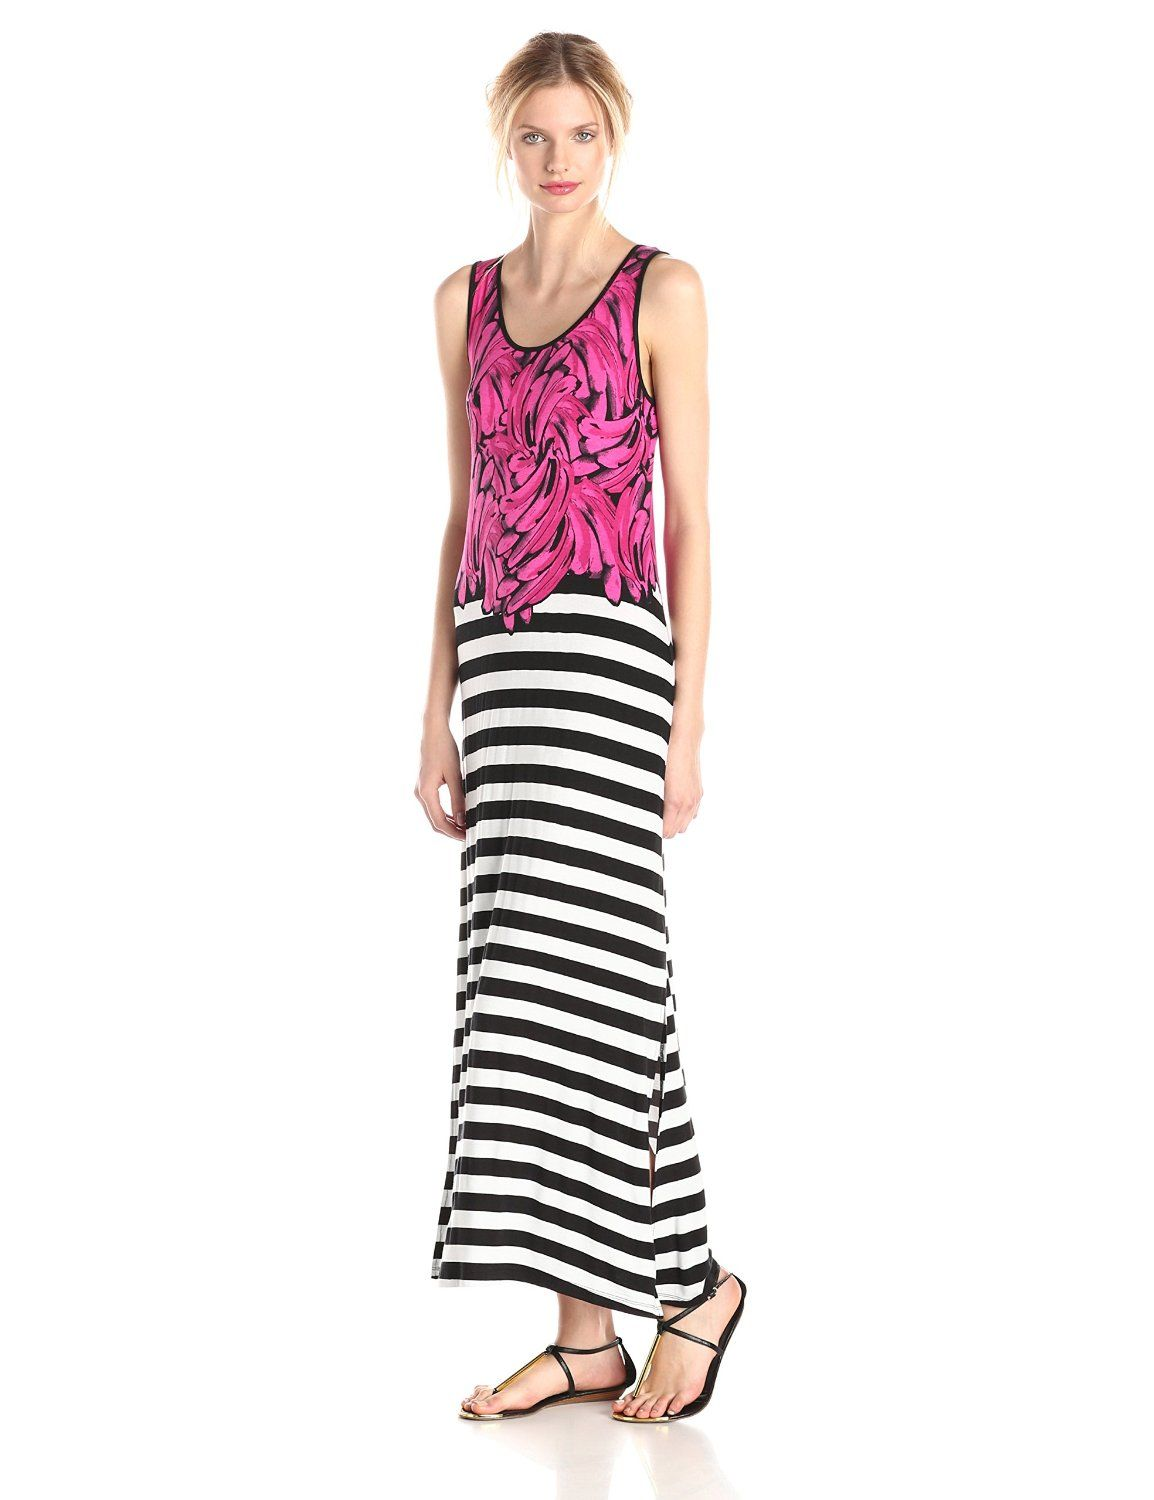 Bananas and Stripes Maxi Dress by kensie